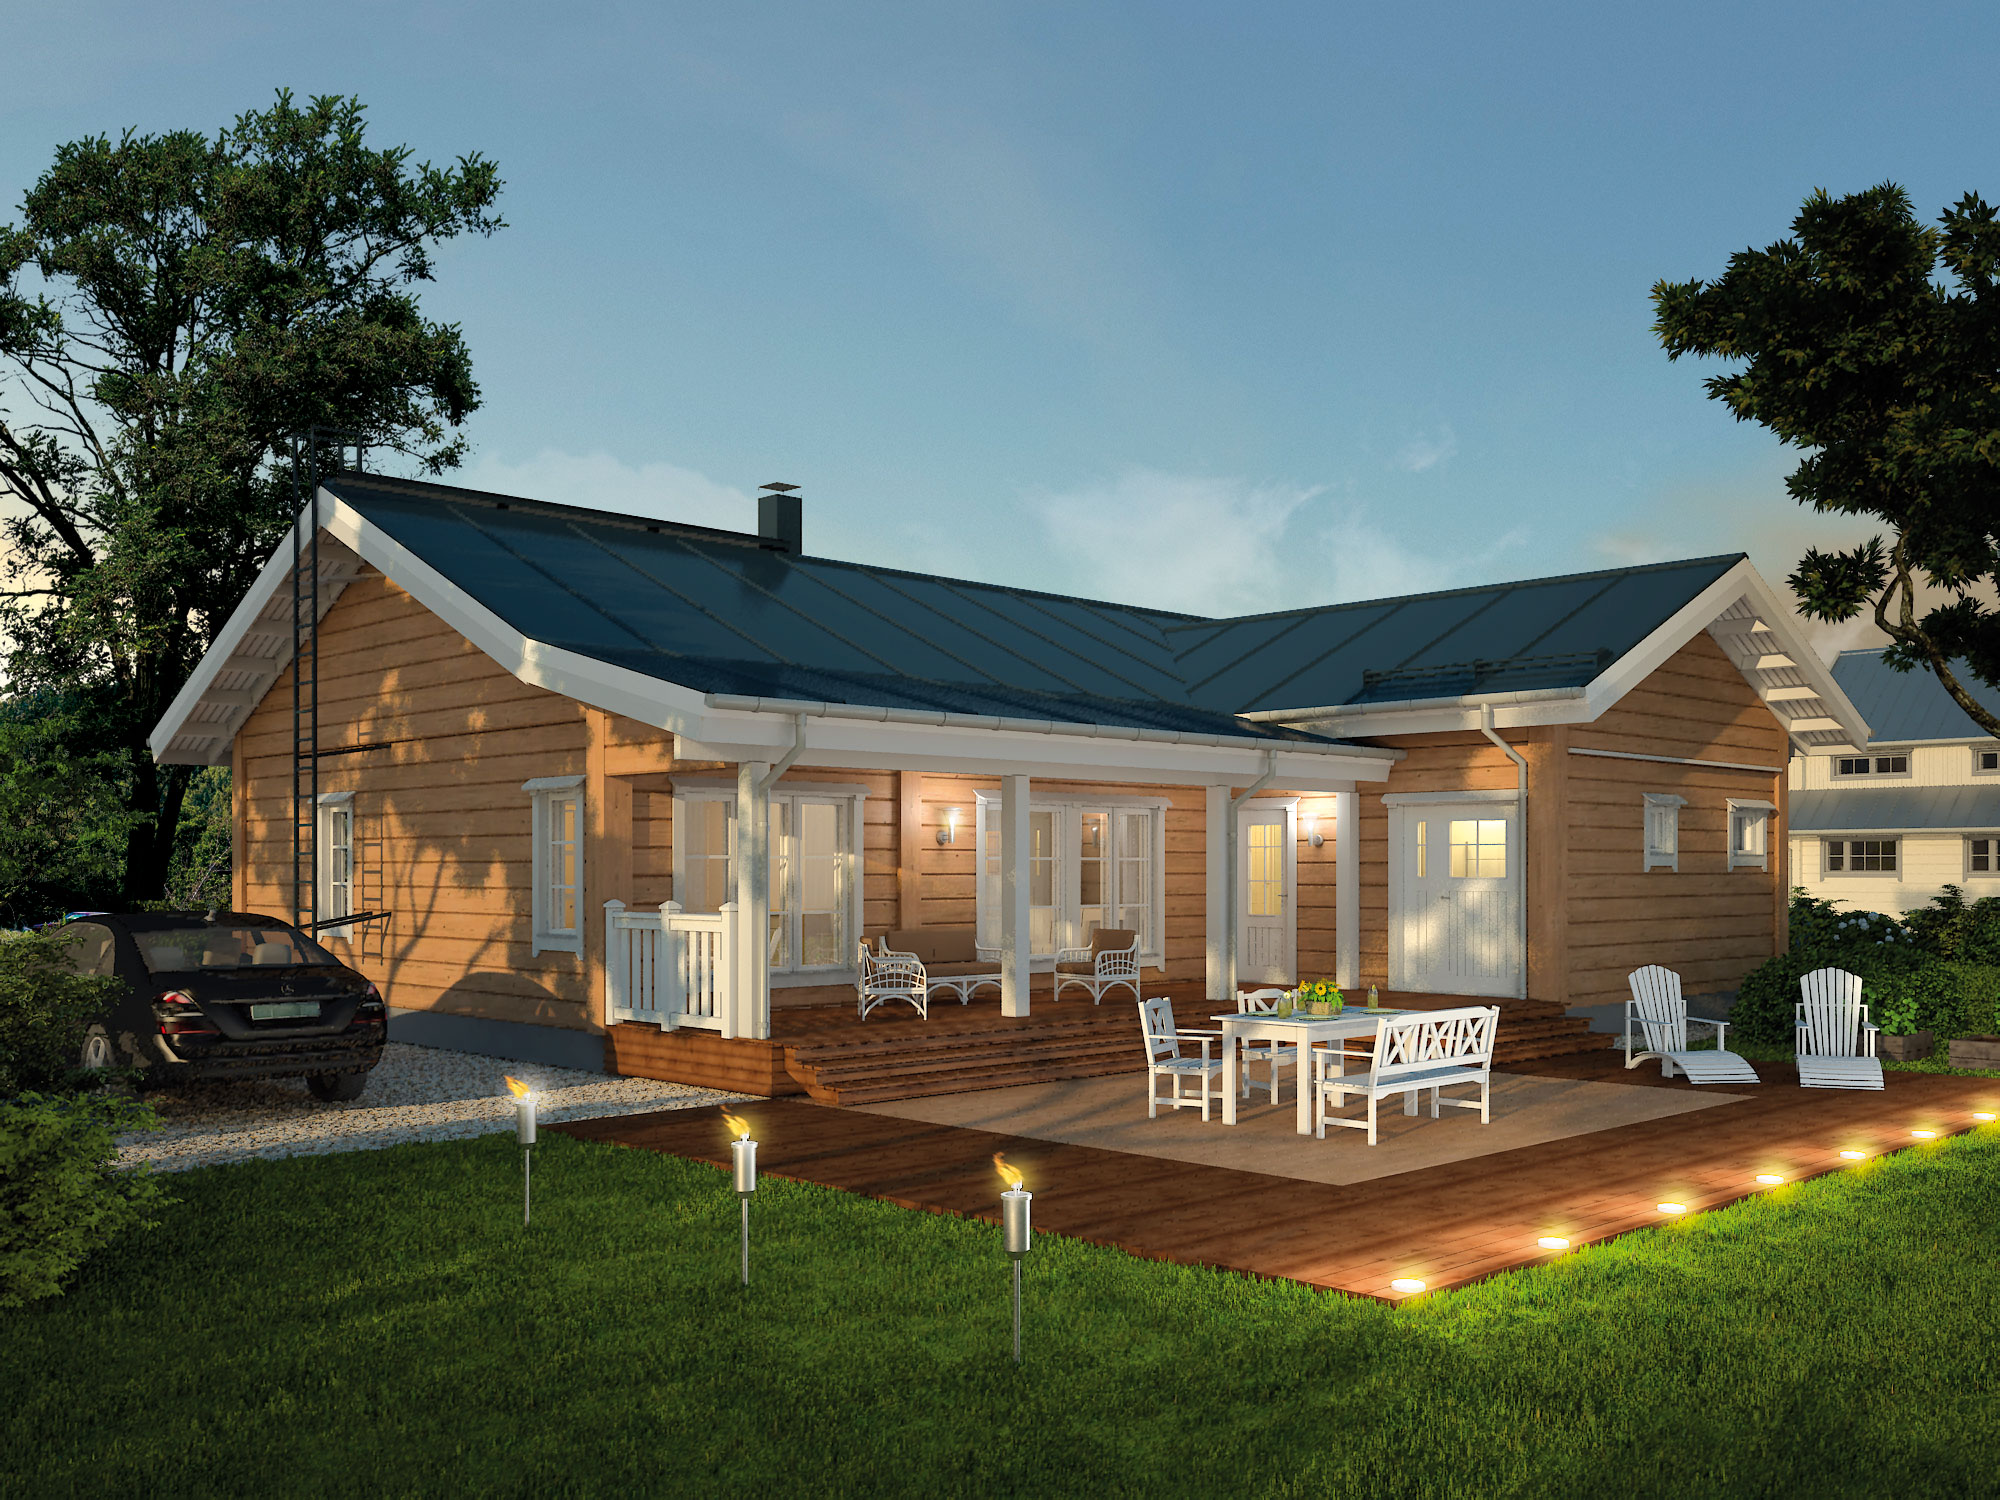 Prefab home also affordable green prefab homes also pre assembled homes also sustainable prefab homes